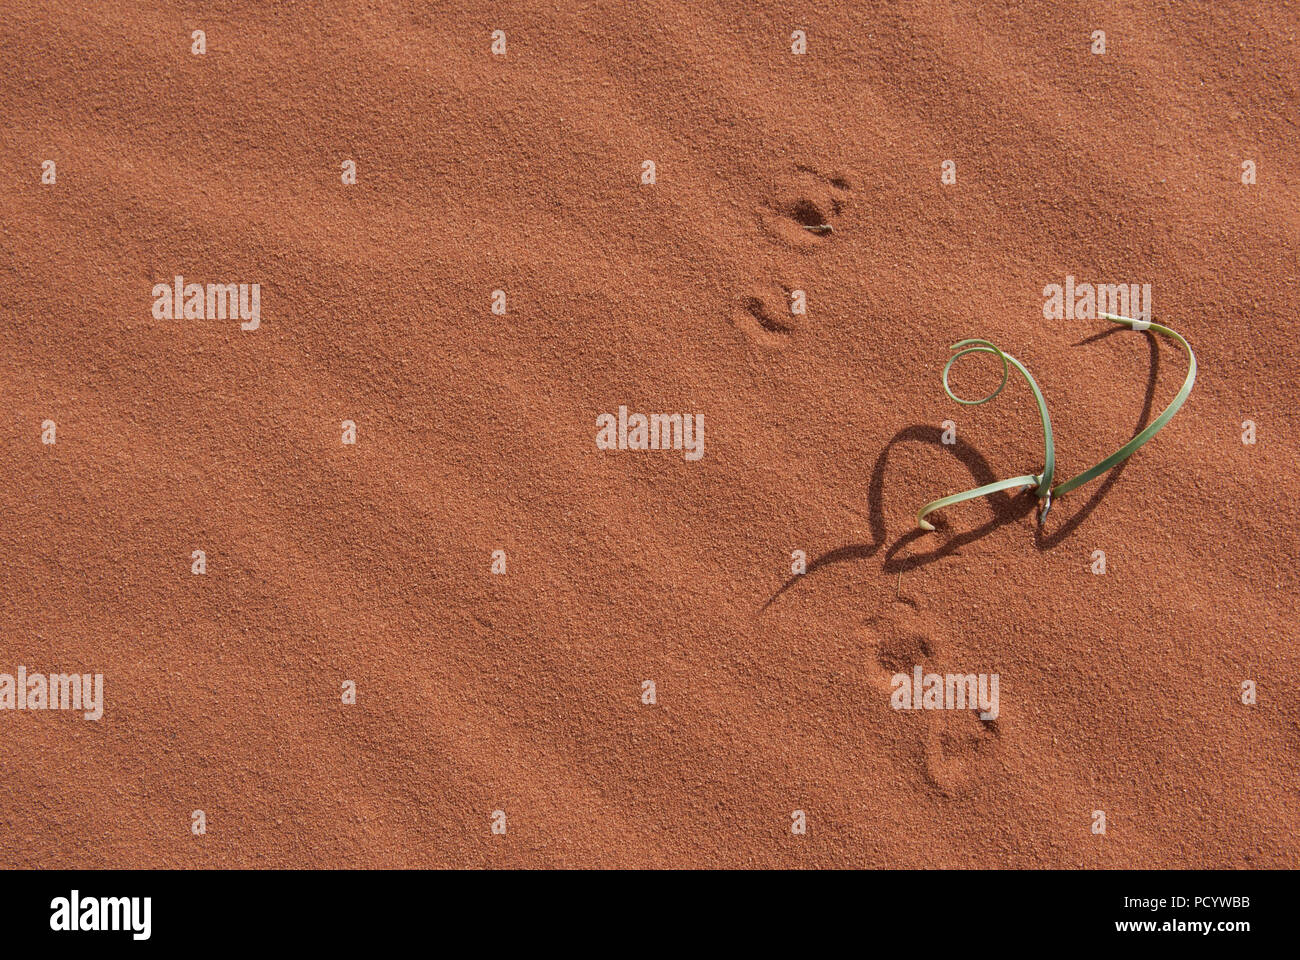 Green plant growing in red desert sand with shadows and footprints, success in arid region - Stock Image